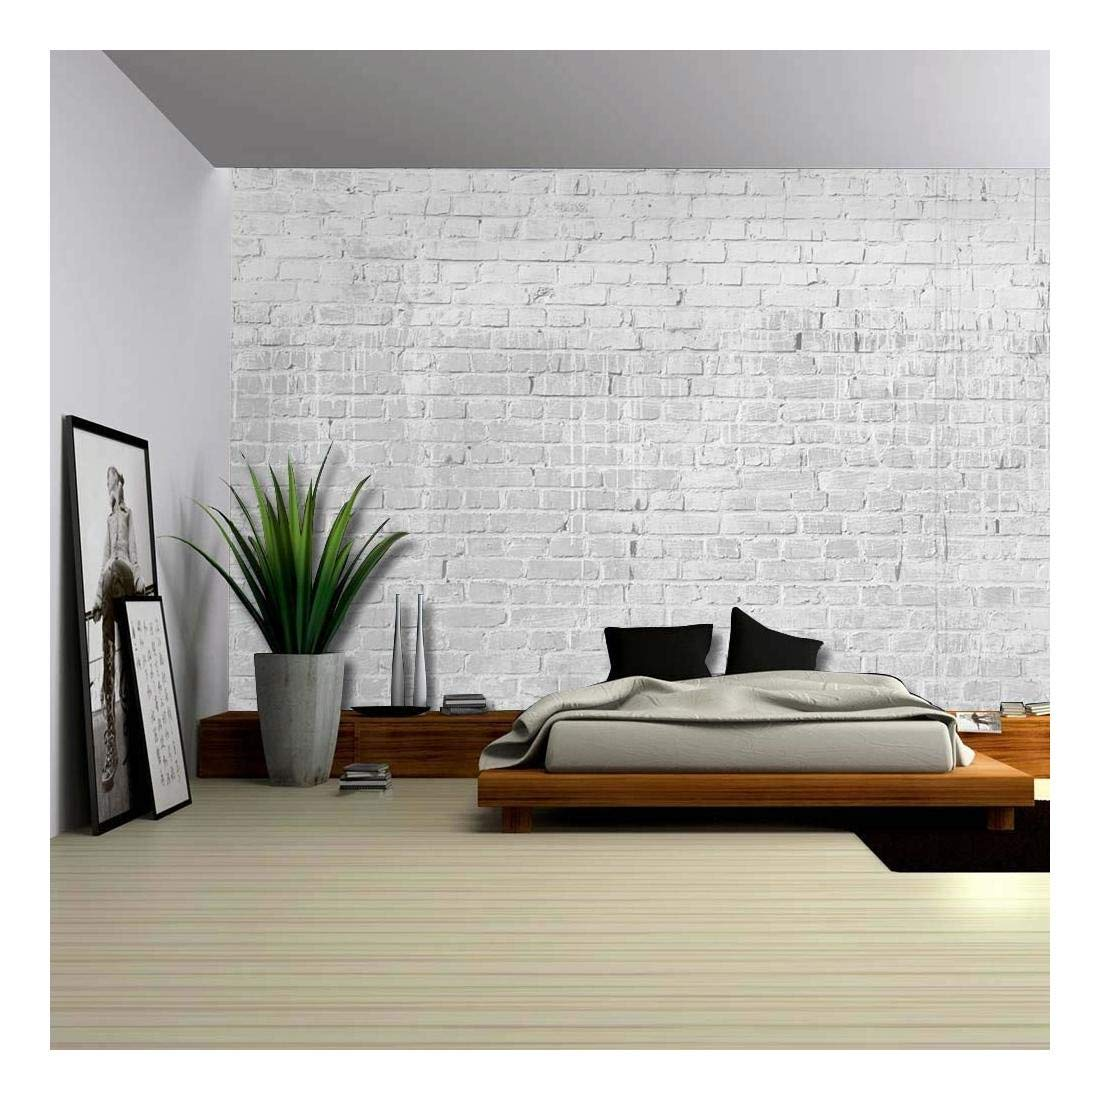 wall26 - Gray and Grungy Brick Wall with Dripping White Paint - Wall Mural, Removable Wallpaper, Home Decor - 100x144 inches